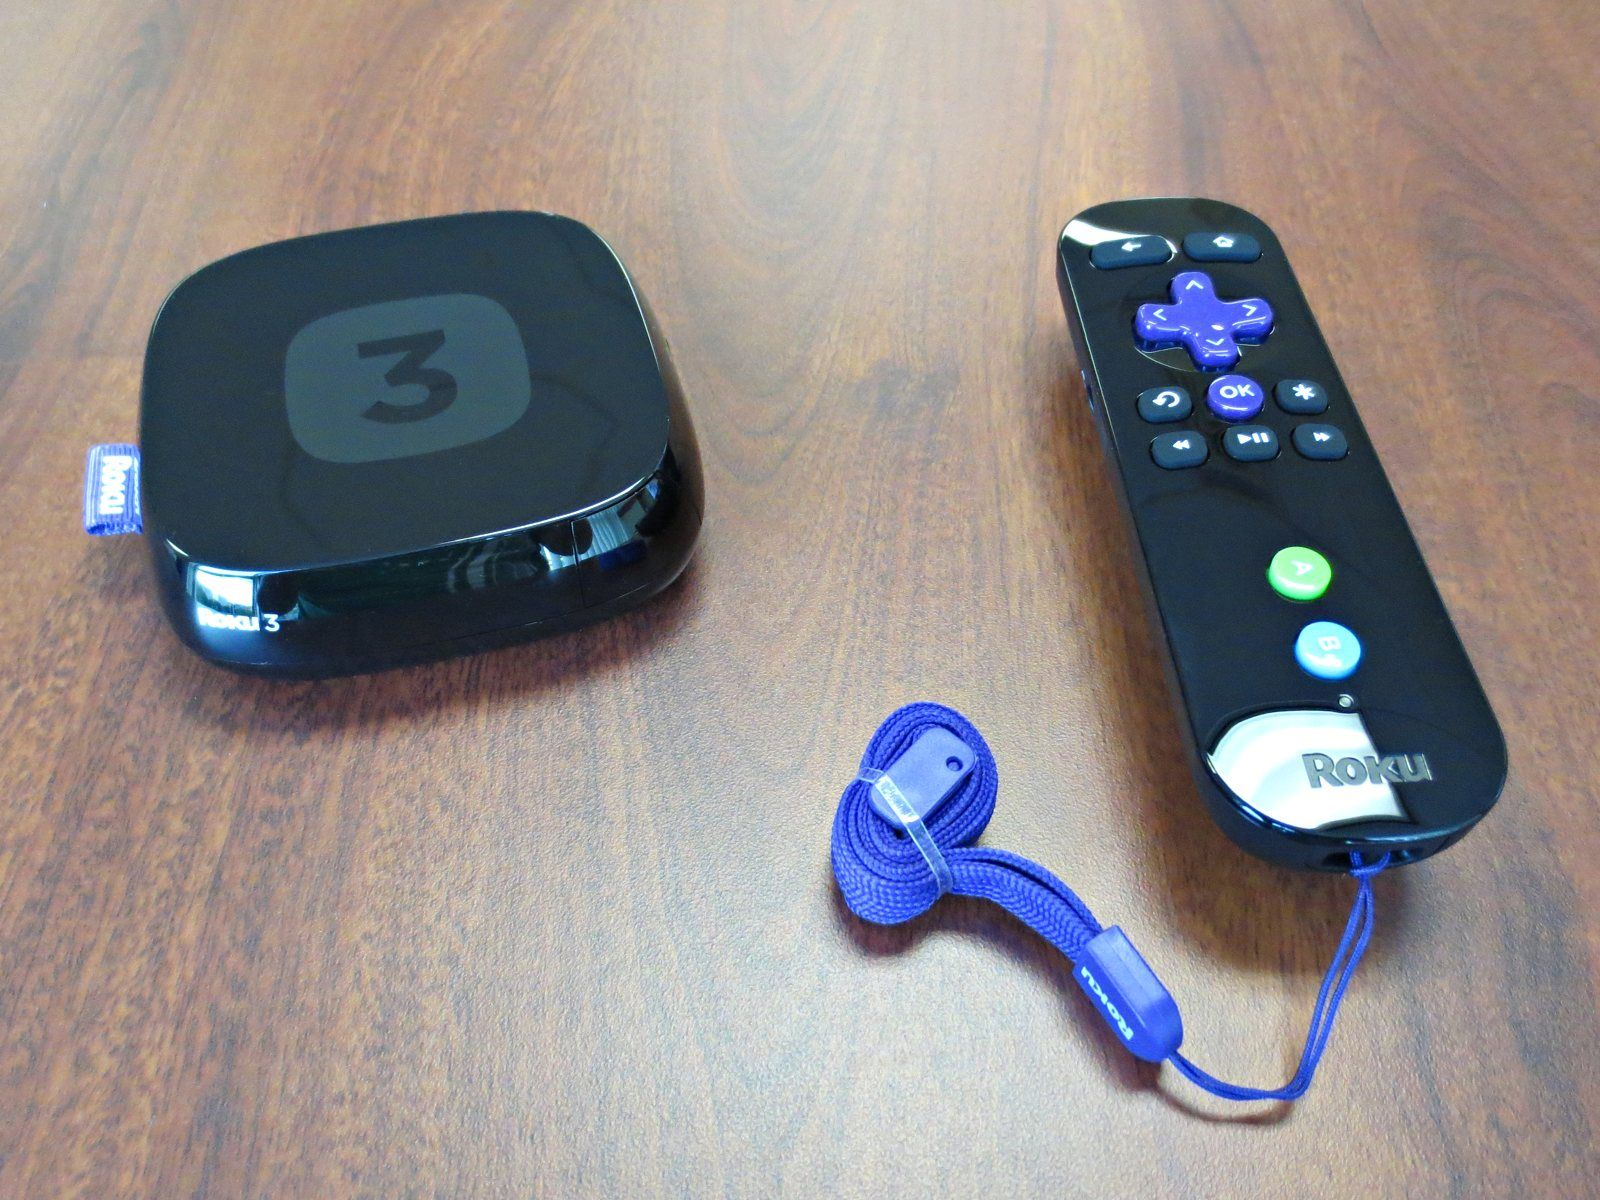 roku-3-streaming-player-review-5